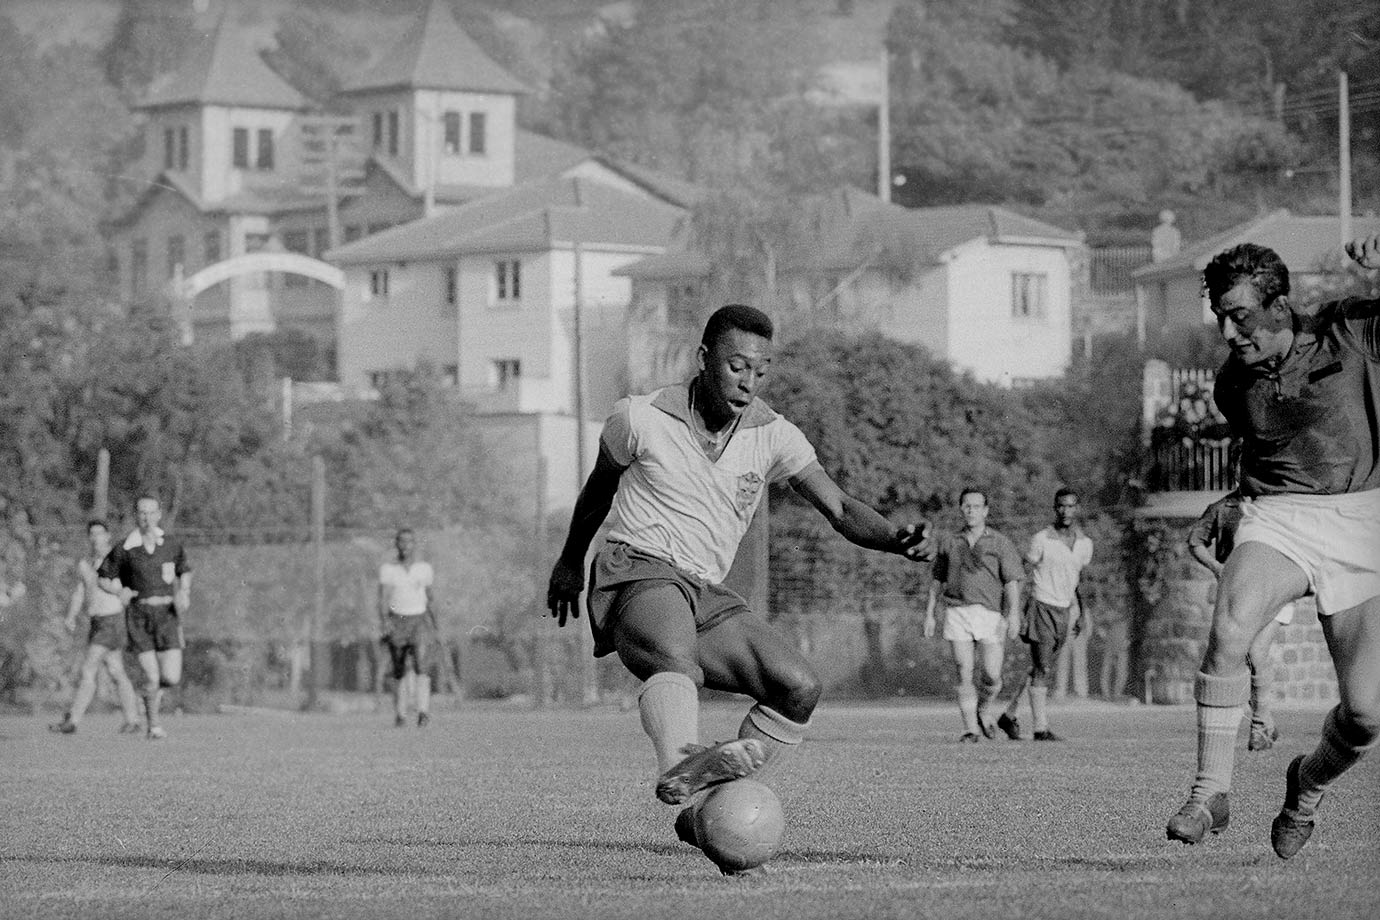 Pelé impresses opponents with his moves while training for the 1962 World Cup. The tournament itself would be a disappointment, as he injured himself during Brazil's showdown with Czechoslovakia.